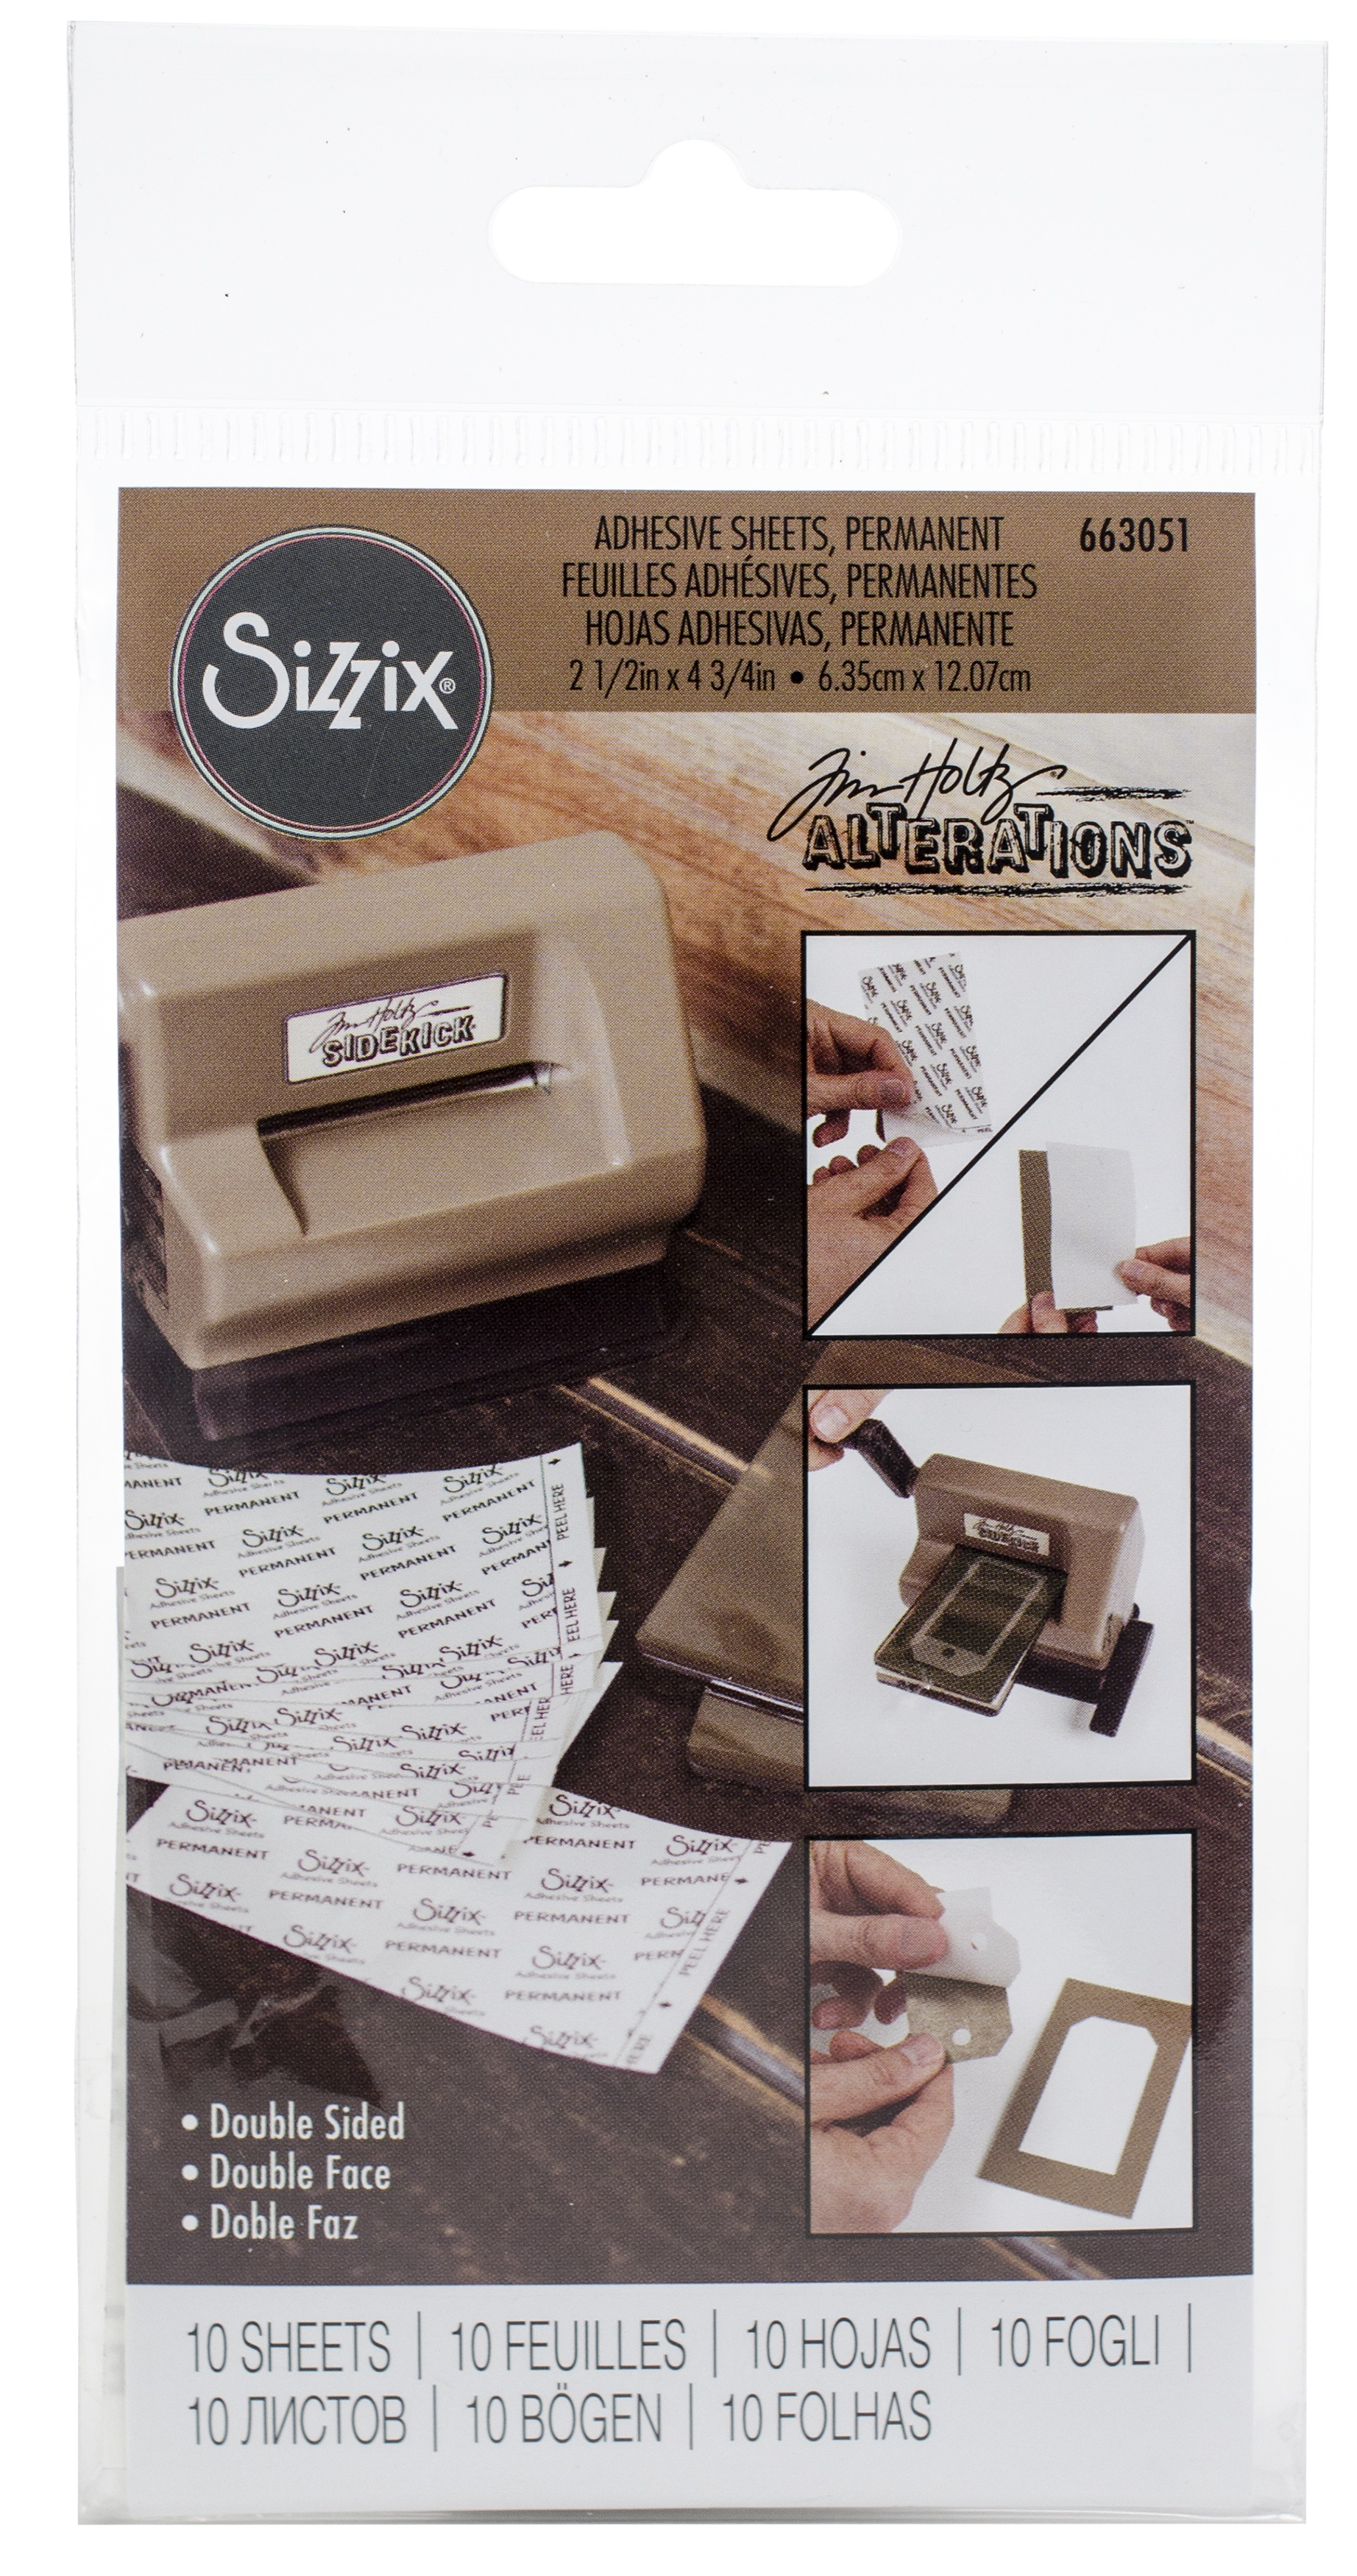 Sizzix Adhesive Sheets 2.5X4.75 10/Pkg-Permanent